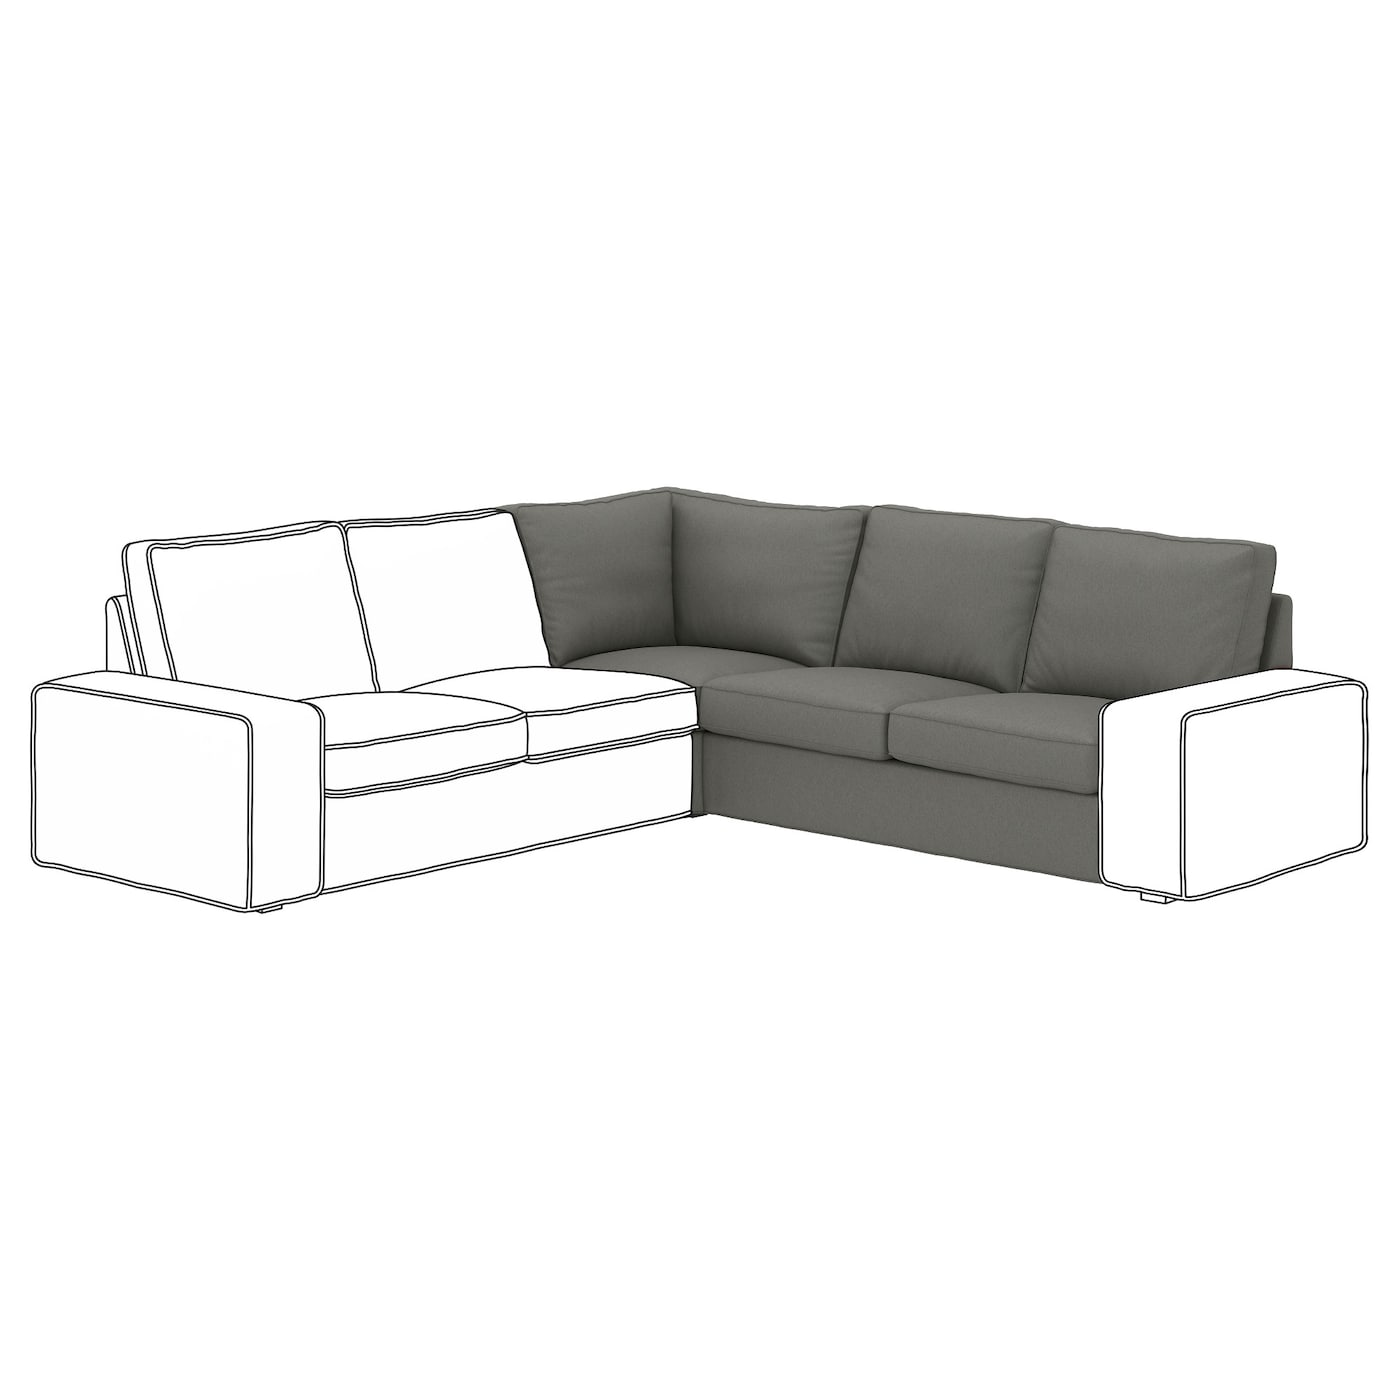 Probiere gratis gepard sitzgruppe von kika produkte in 3d for G furniture tuam road galway